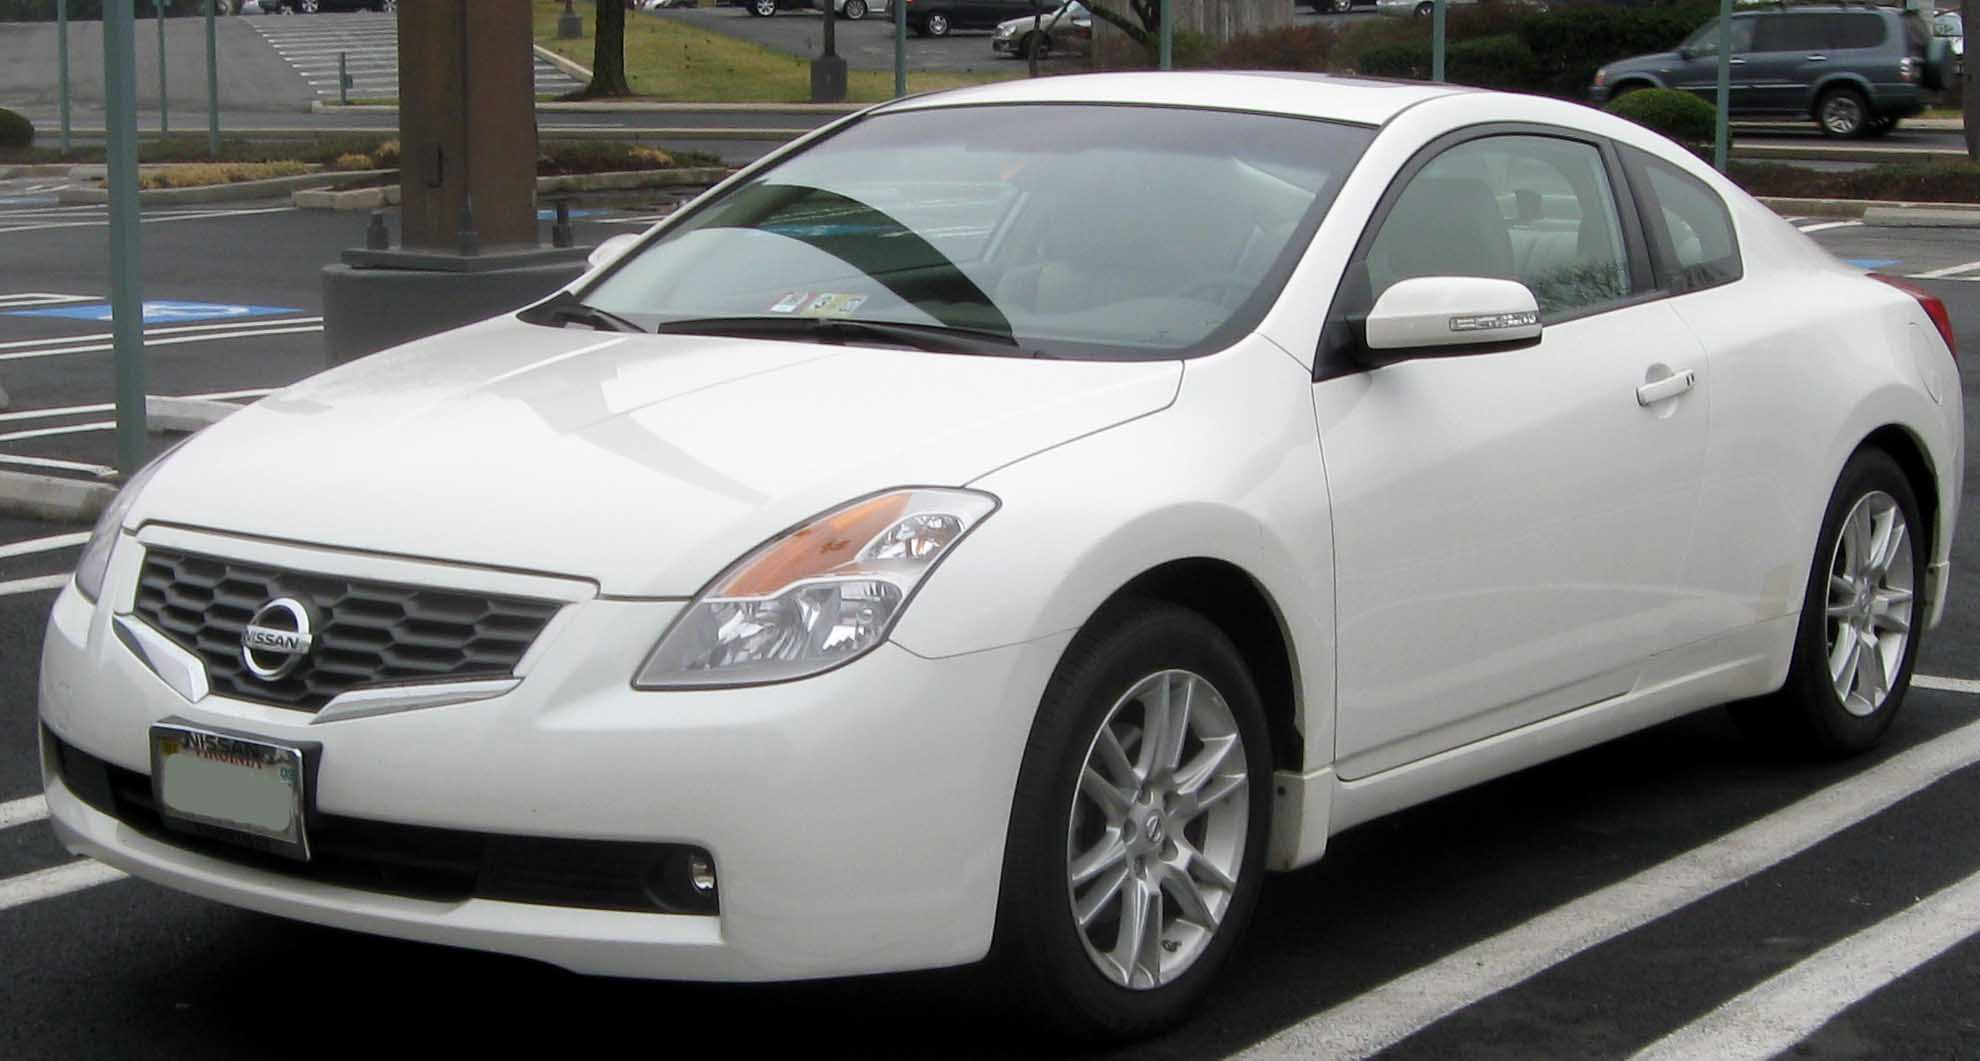 File:Nissan Altima Coupe